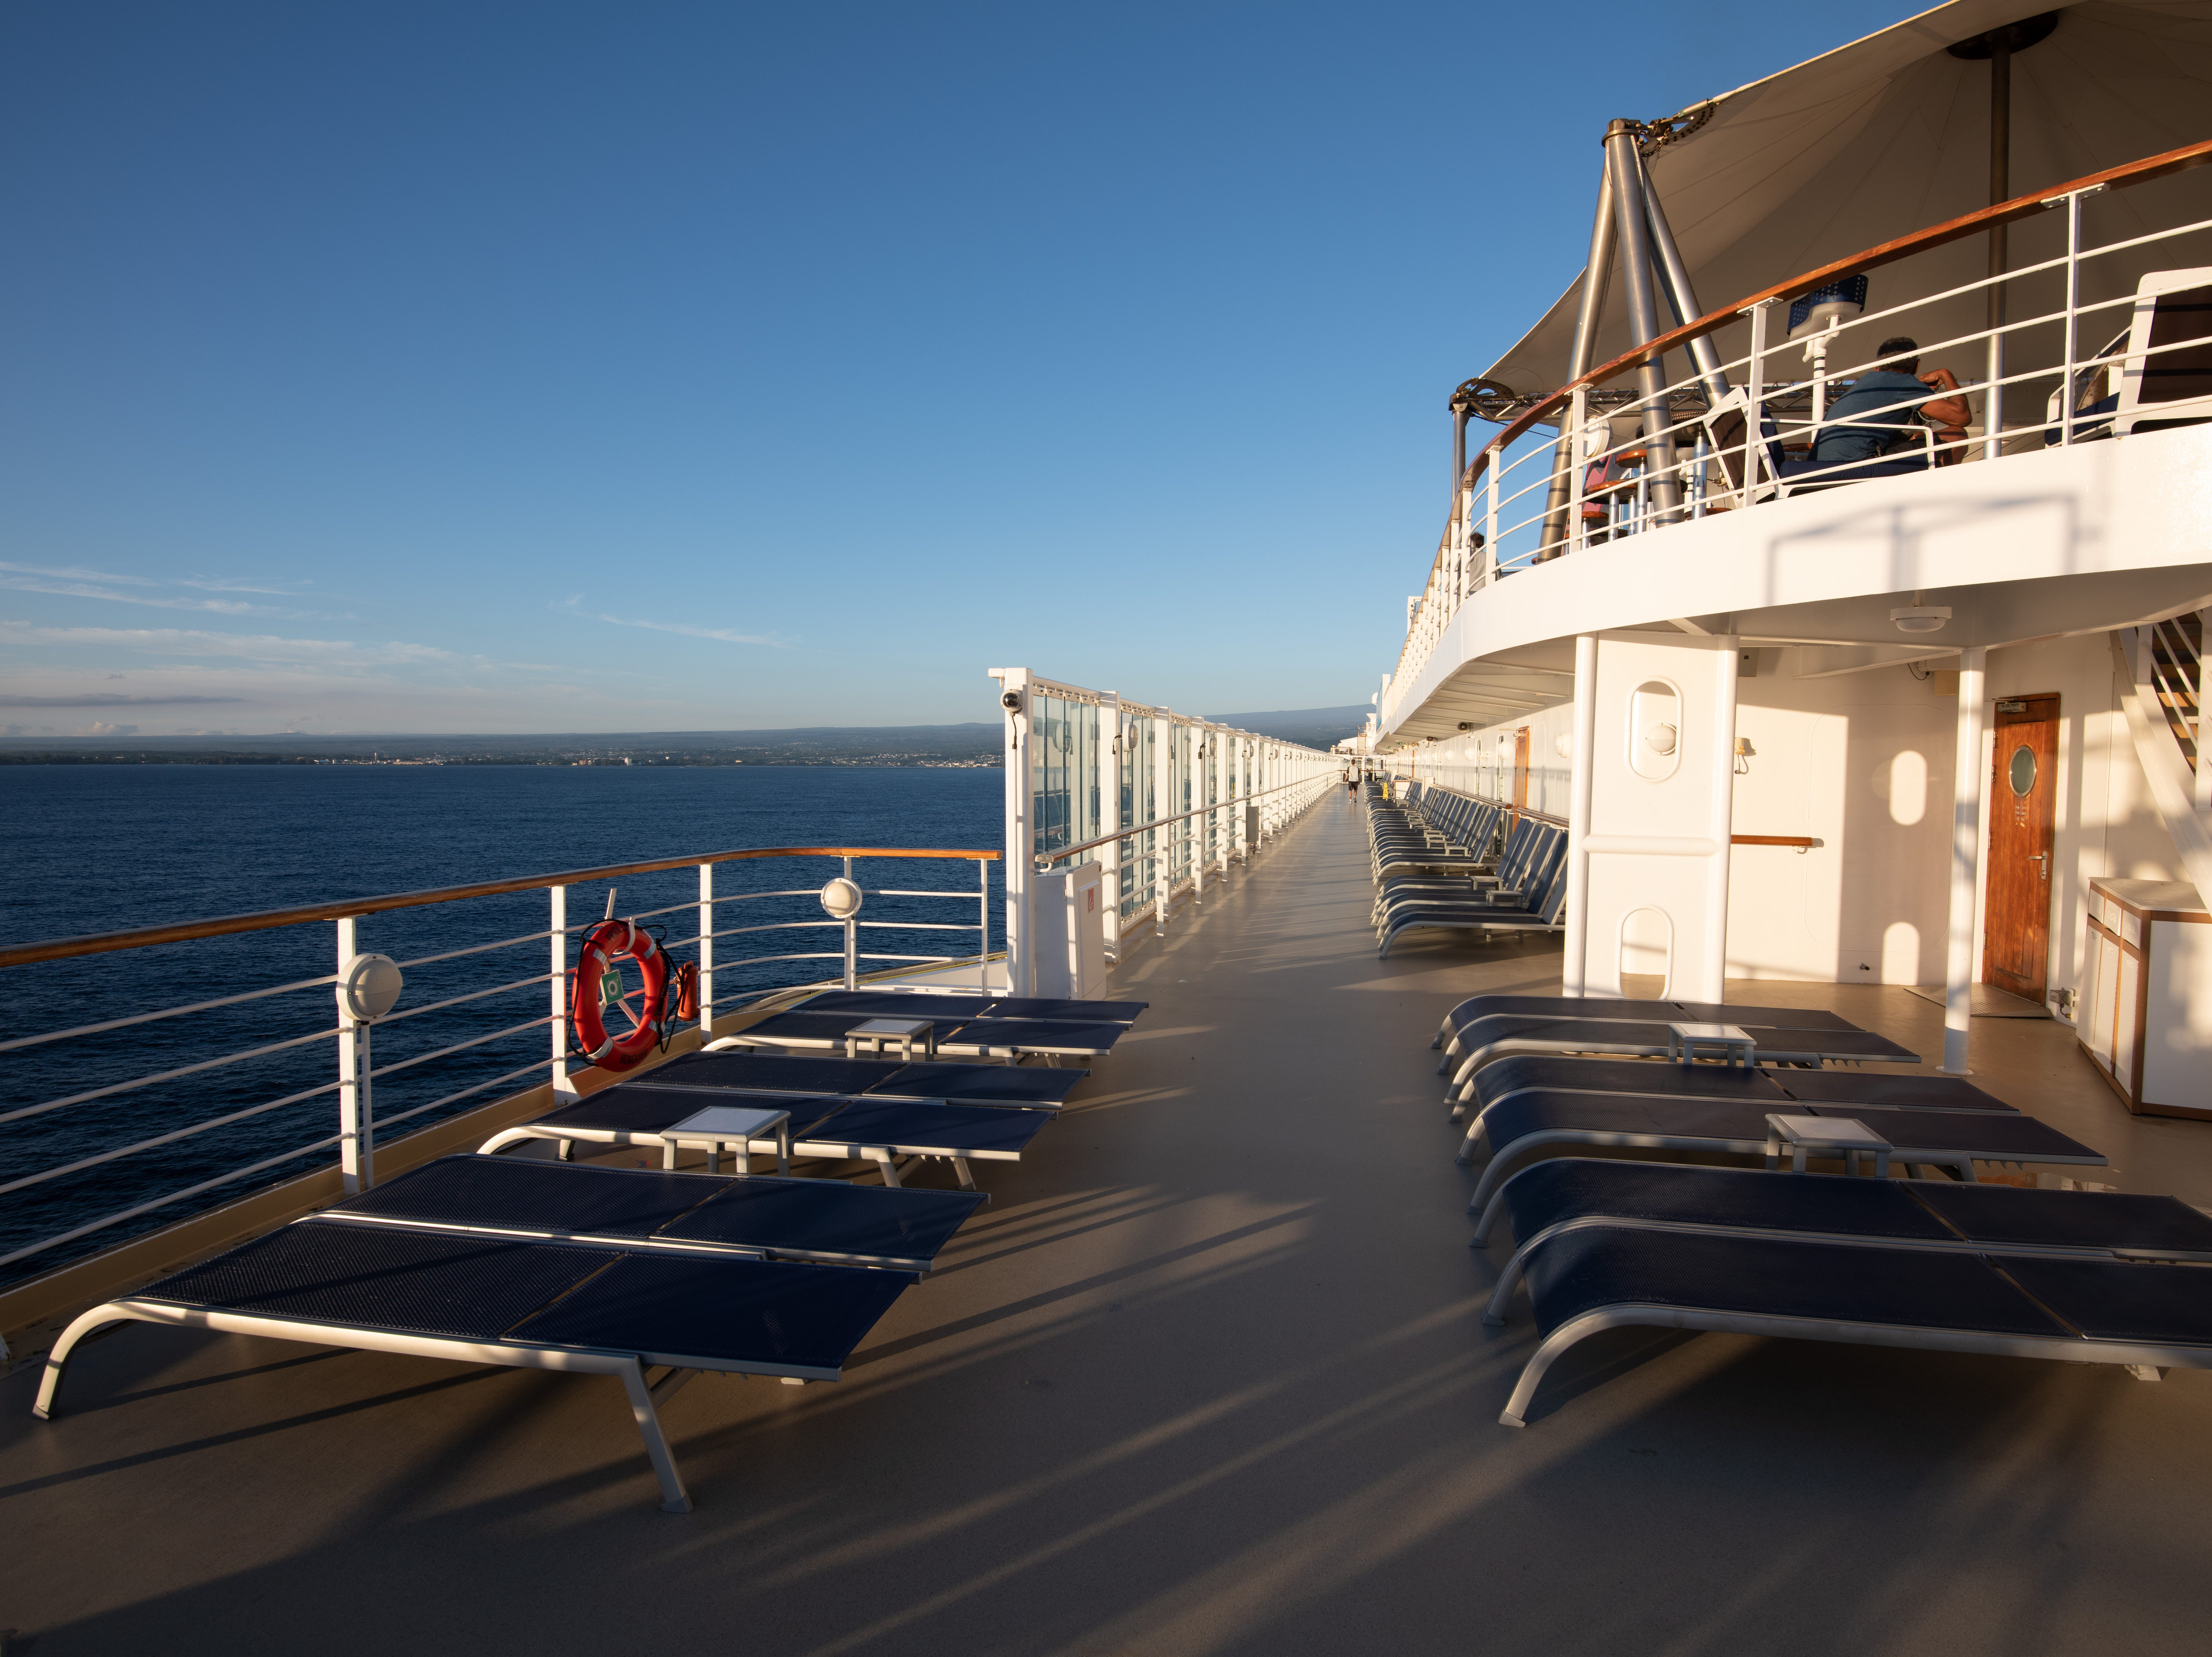 A notable characteristic of Pride of America is its wide-open deck areas full of lounge chairs.